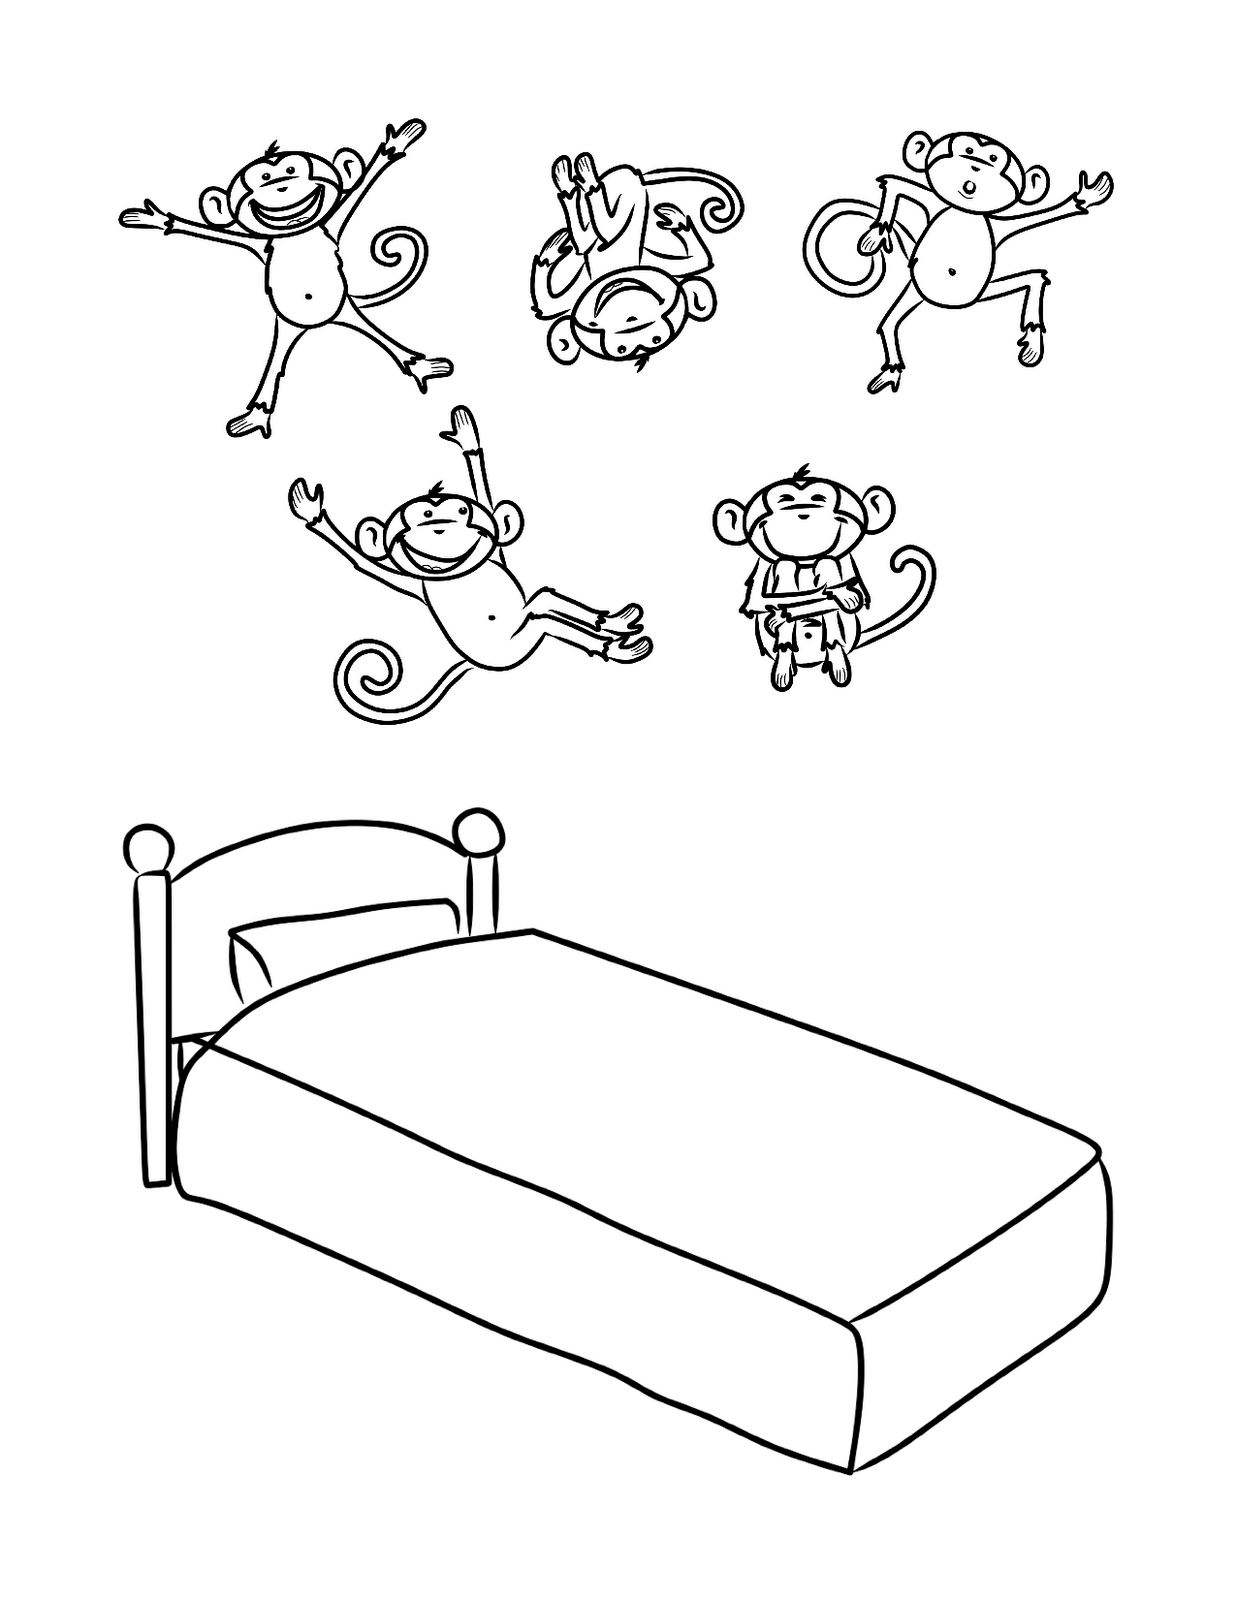 Free Coloring Pages Of Five Little Monkeys